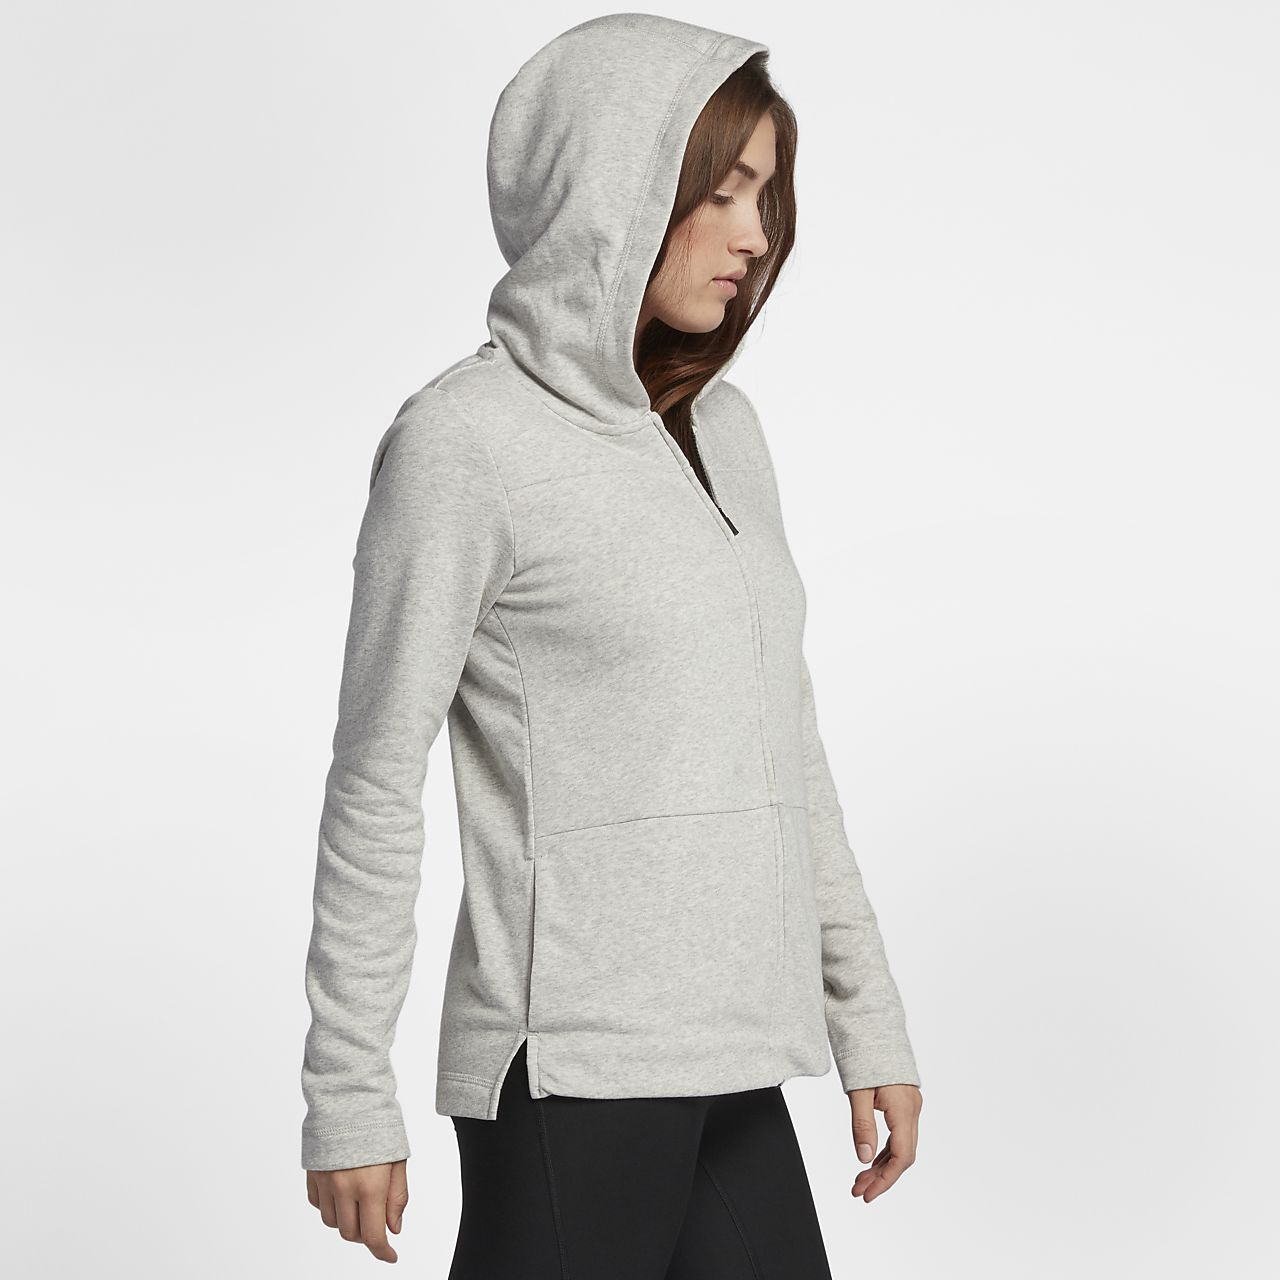 Hurley One And Only Full-Zip